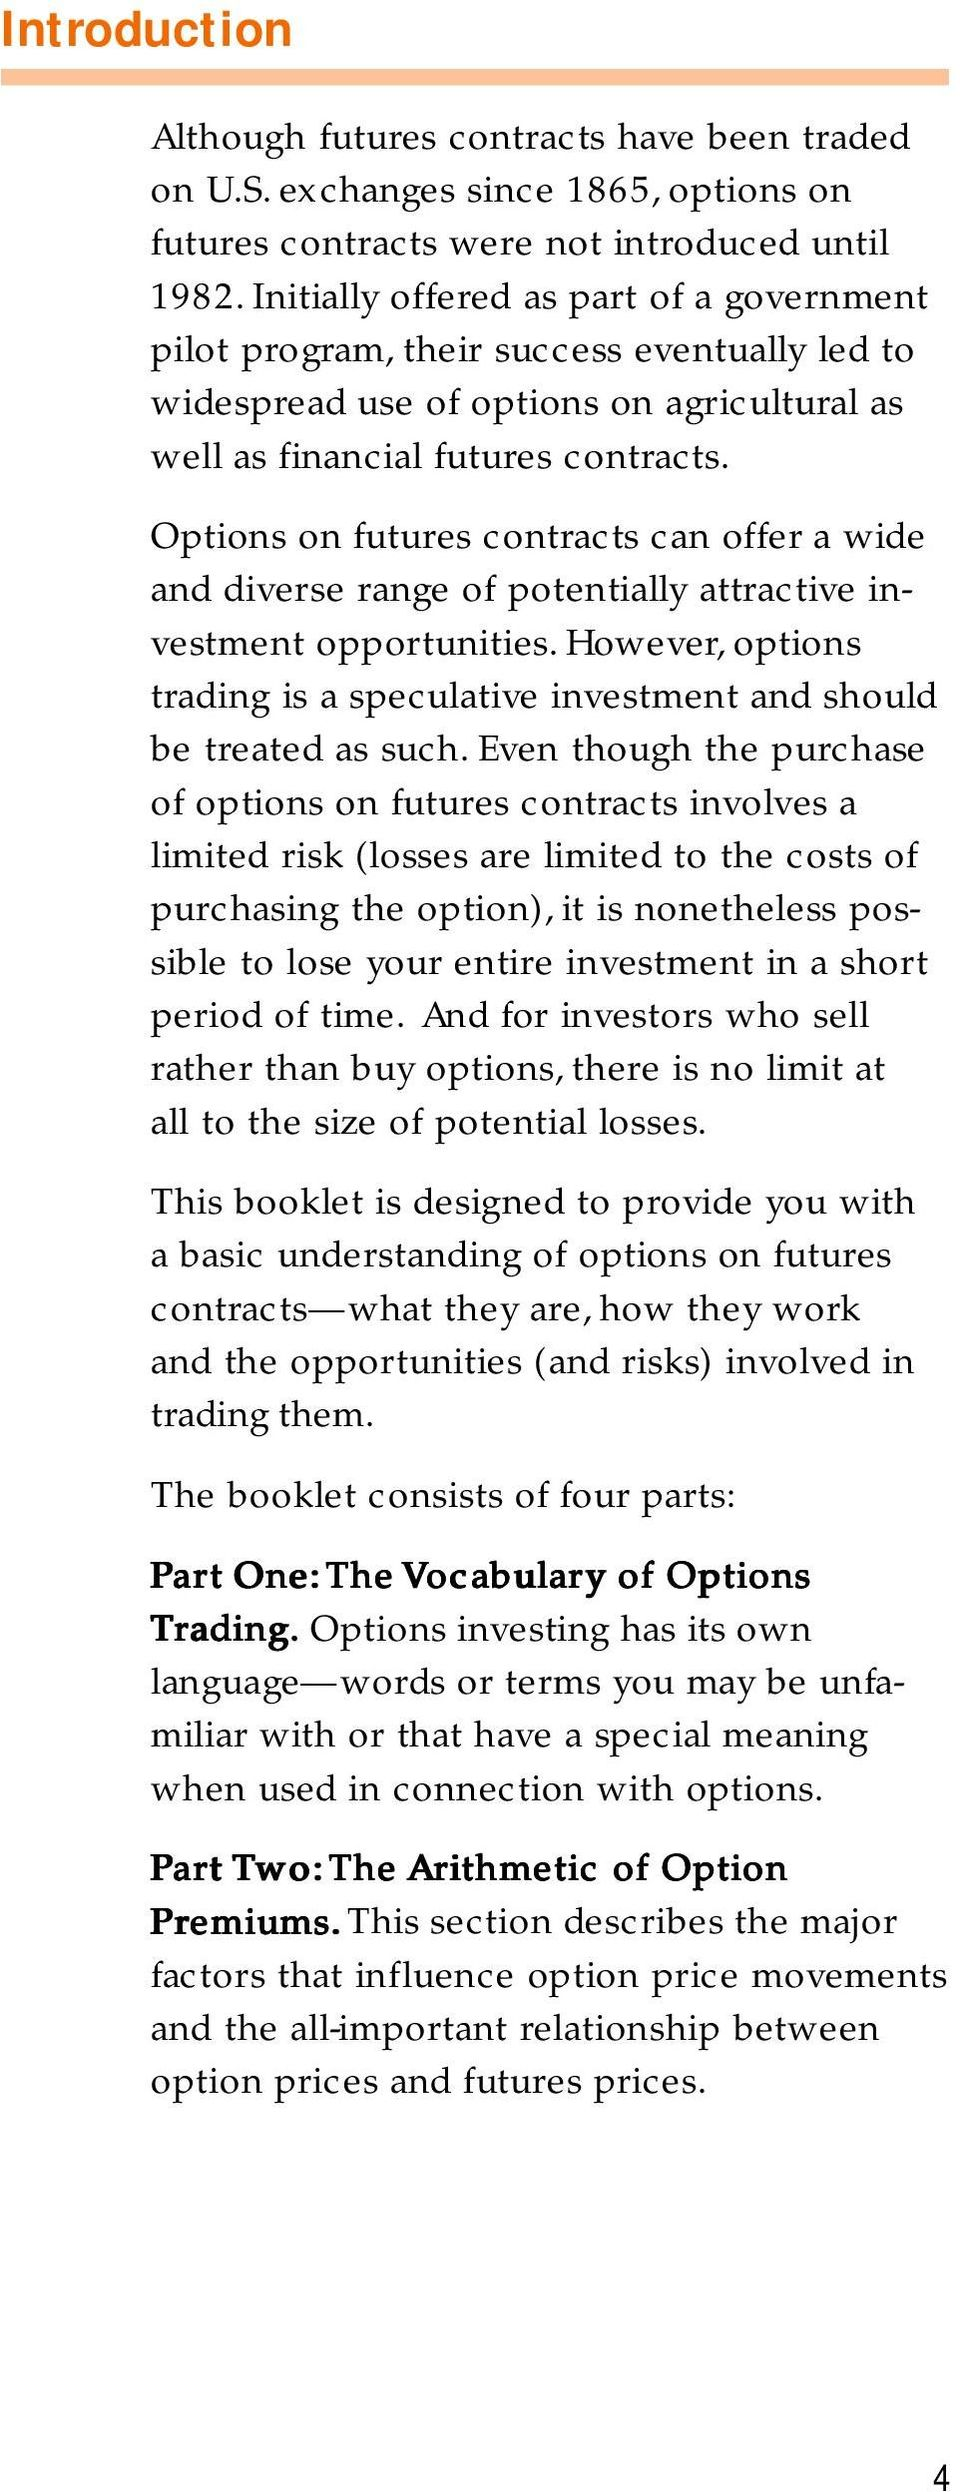 Options on futures contracts can offer a wide and diverse range of potentially attractive investment opportunities. However, options trading is a speculative investment and should be treated as such.